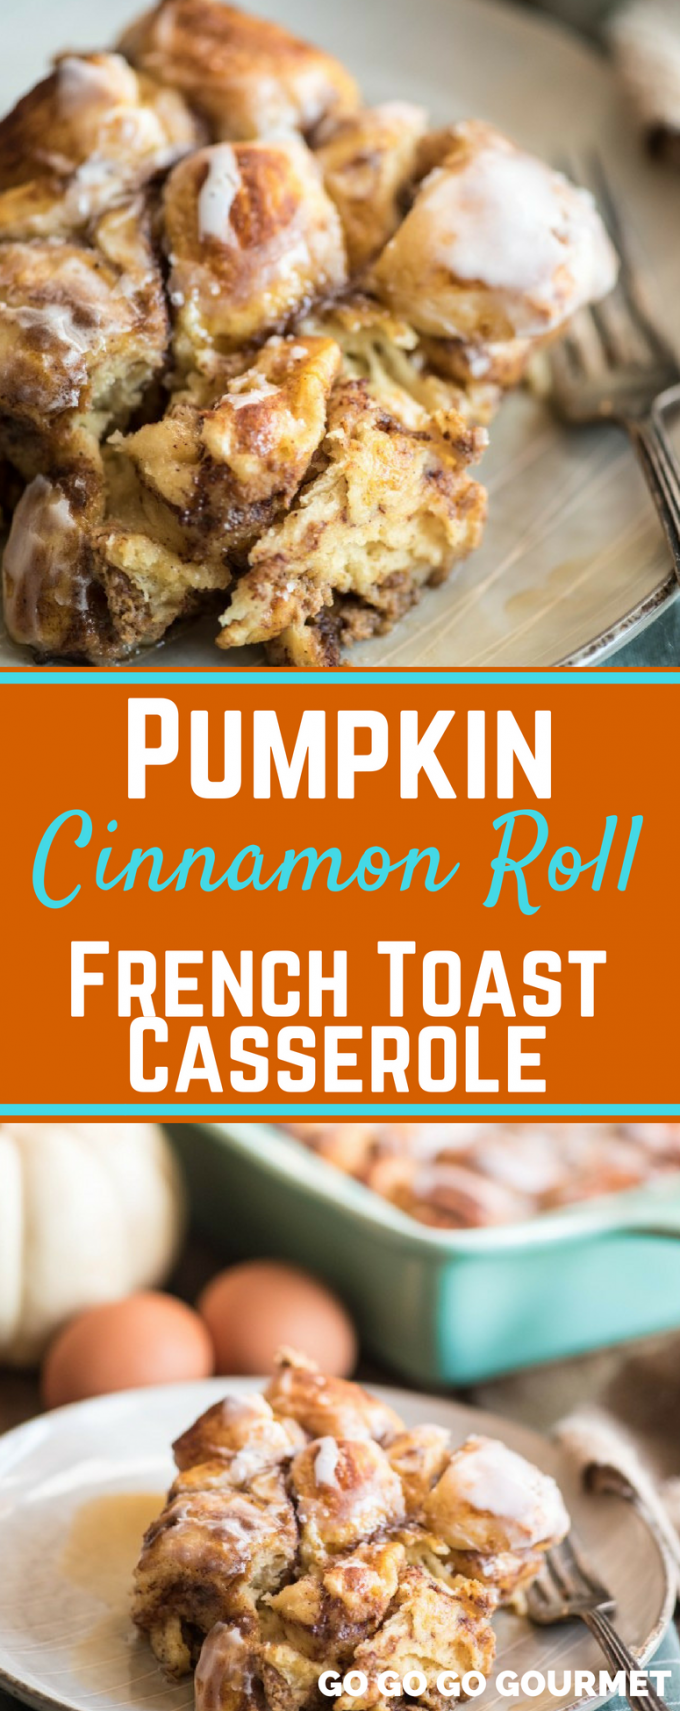 This Pumpkin Cinnamon Roll French Toast Casserole is full of fall flavor and warm spices. It's one of my favorite easy brunch recipes! Made with two cans of cinnamon rolls and baked to perfection, this is a breakfast recipe you will want to make over and over! #pumpkincinnamonrollfrenchtoast #fallrecipes #pumpkinrecipes #brunchrecipes #gogogogourmet via @gogogogourmet